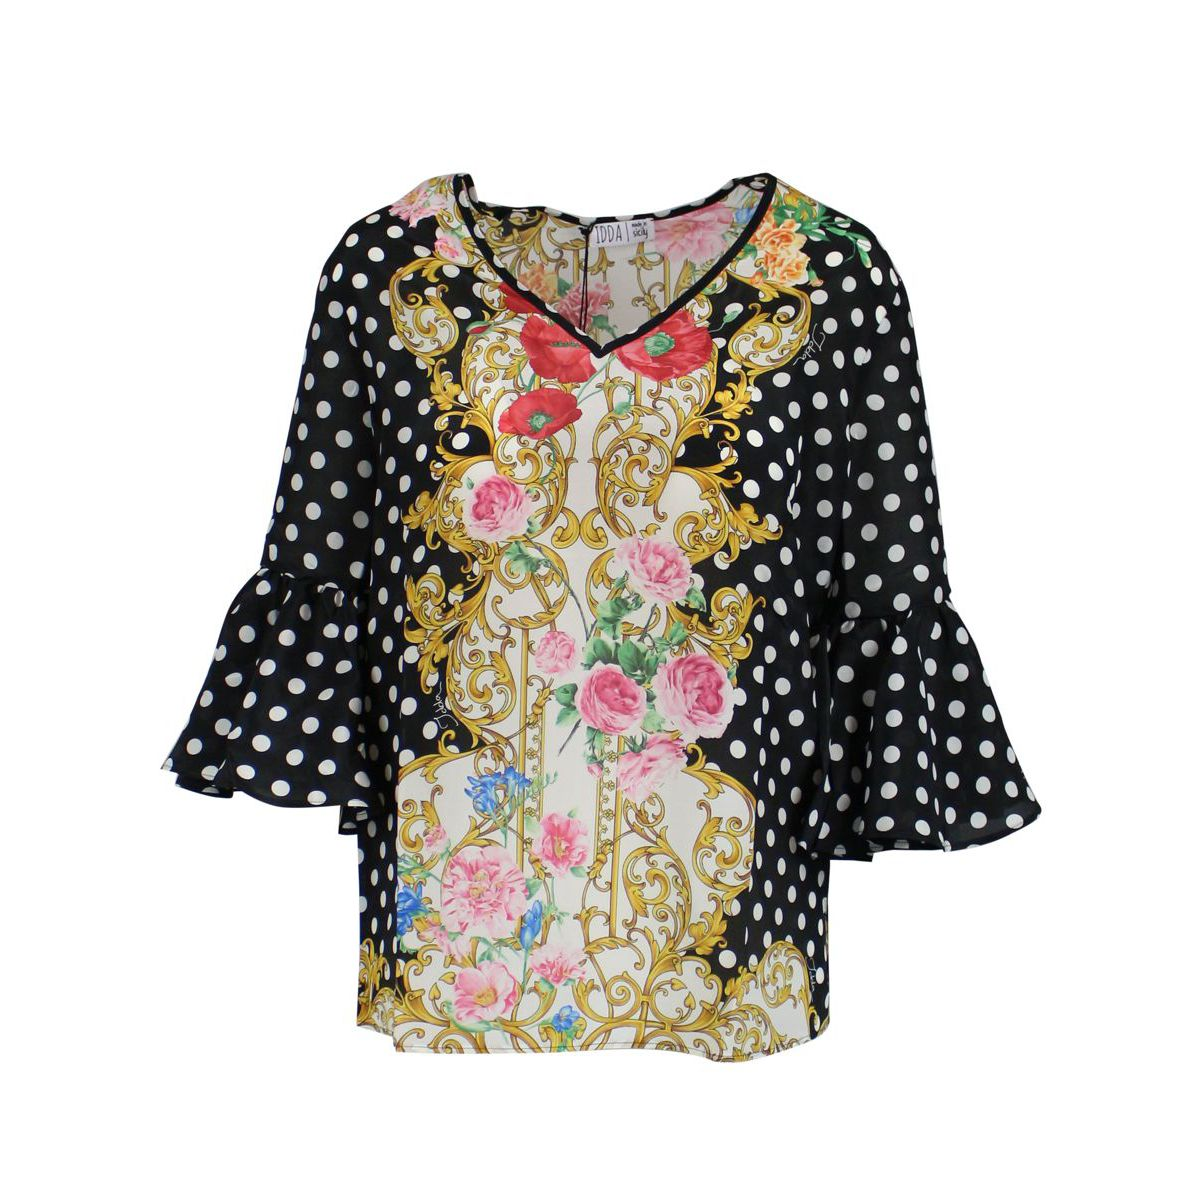 Blouse with polka dot print with flowers Black gold IDDA